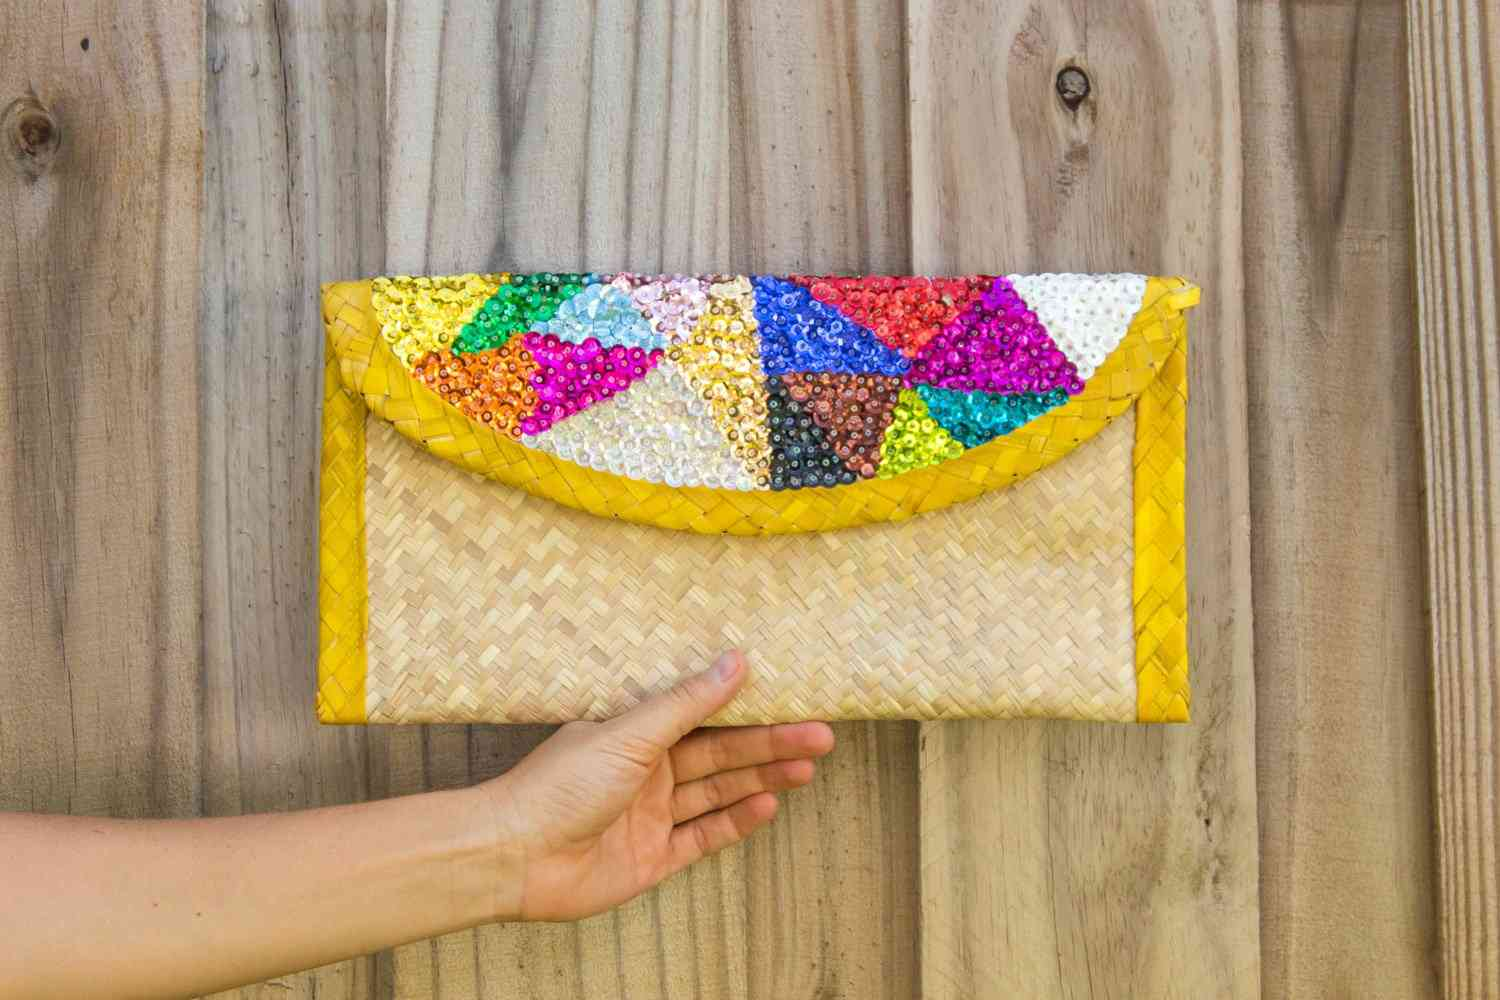 Clutch Bag With Colorful Sequin Embroidery Triangles